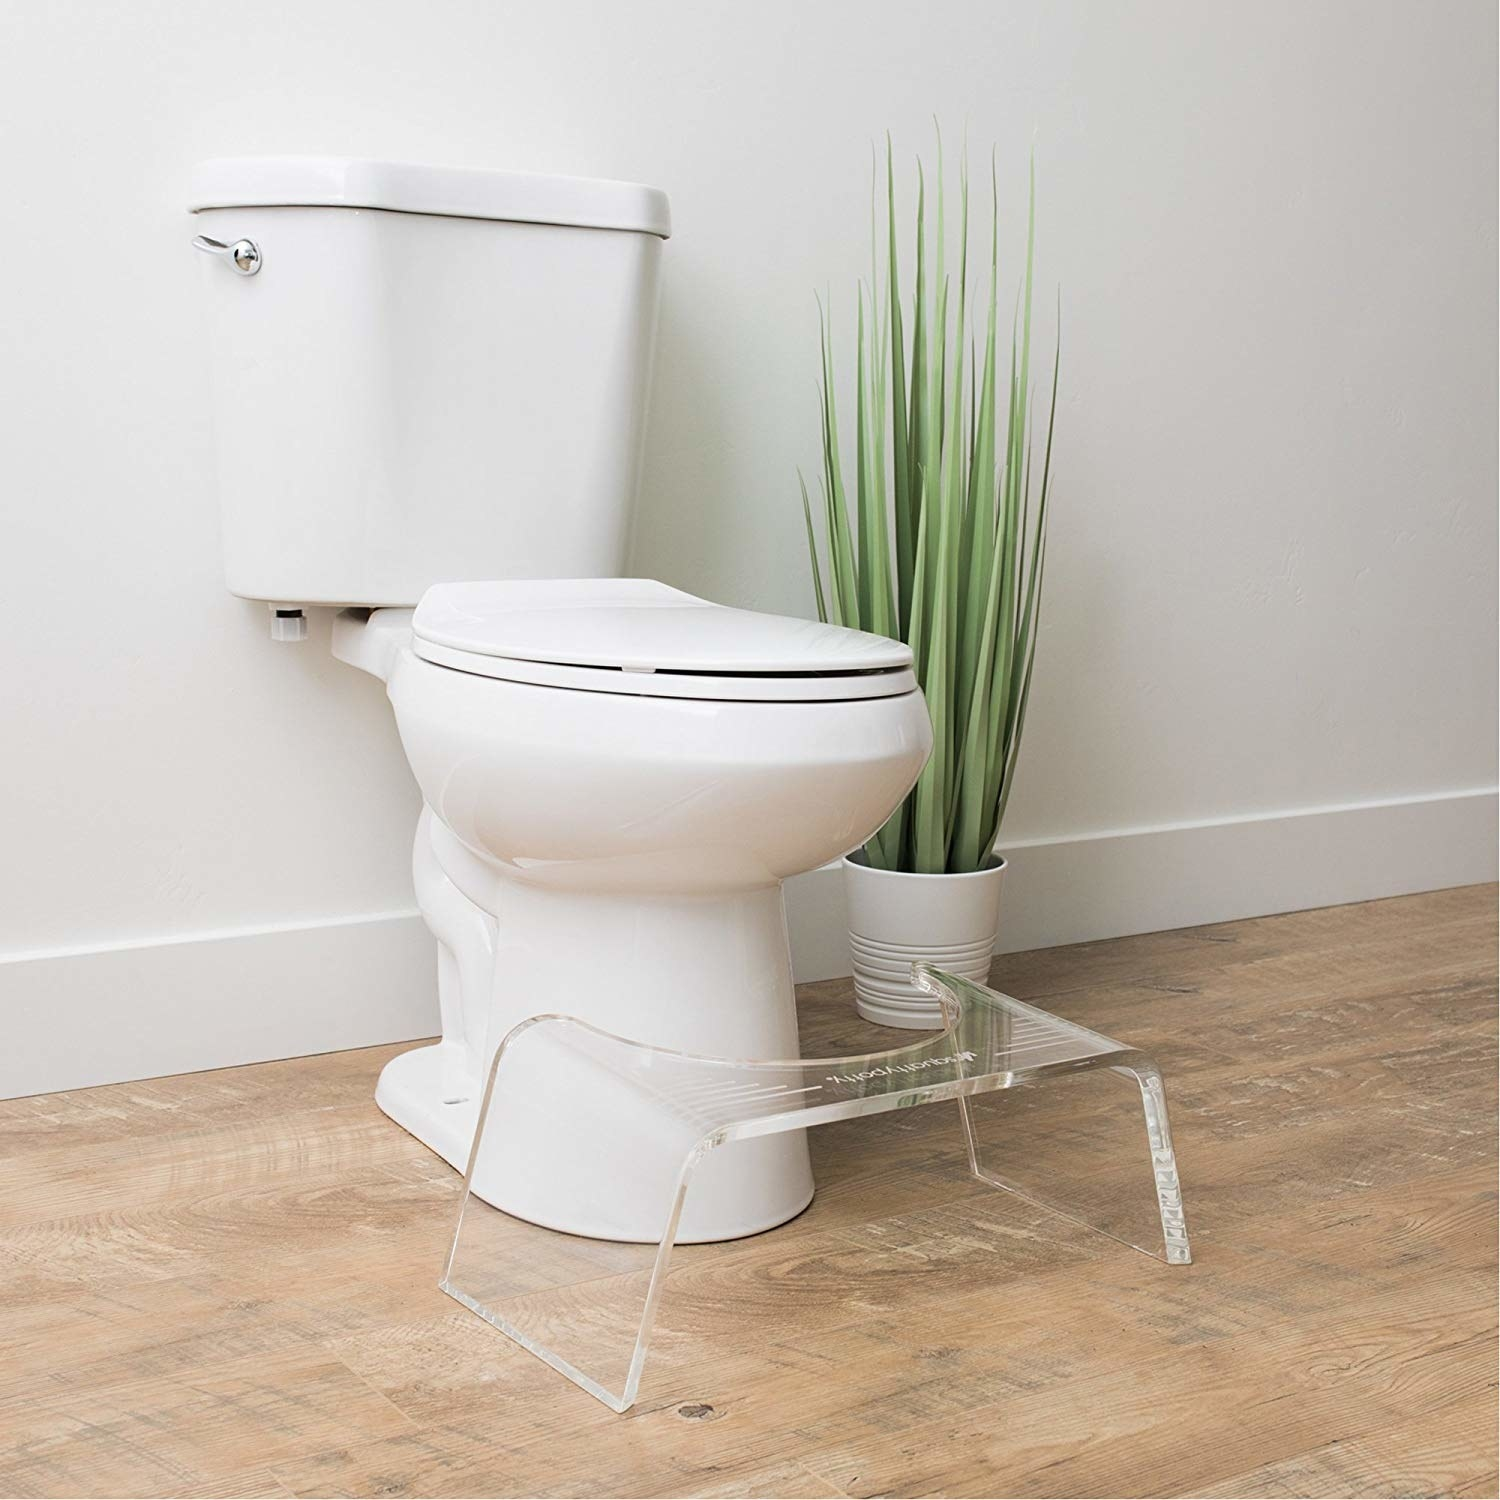 The clear step stool with a rounded side against a toilet